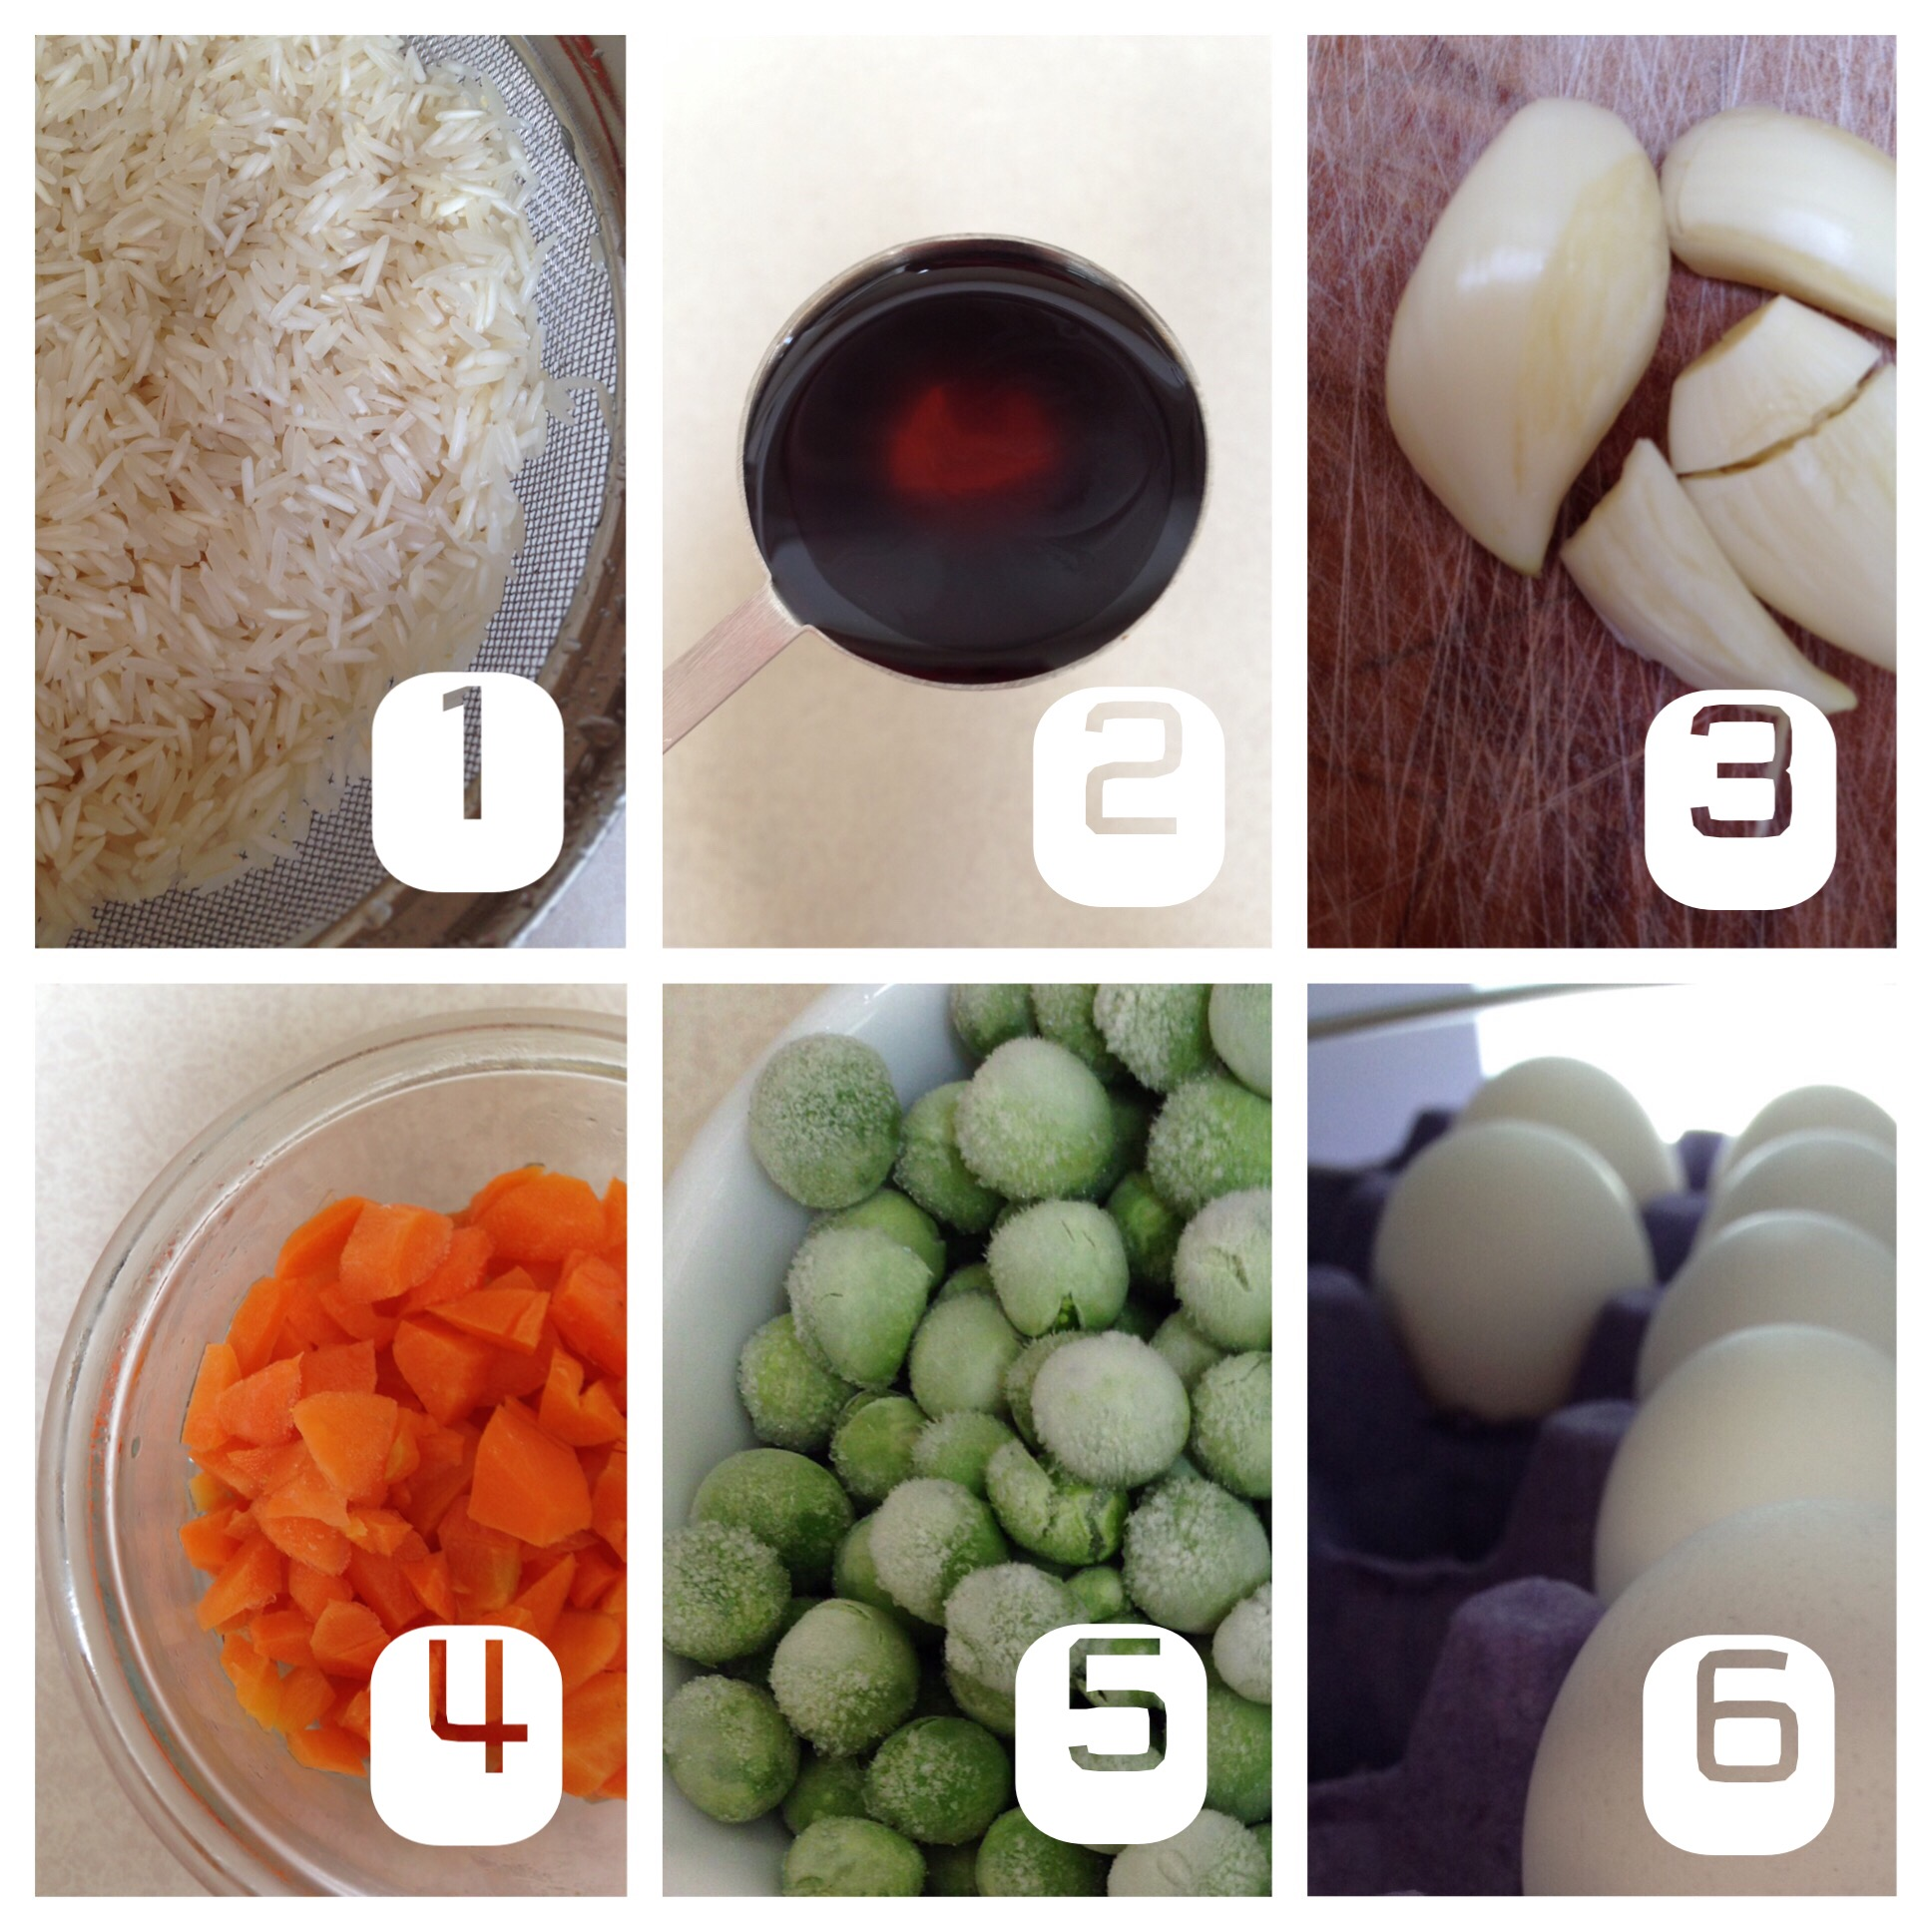 Rice, soya sauce, garlic, carrots, peas and eggs pictured for the simple fried rice.